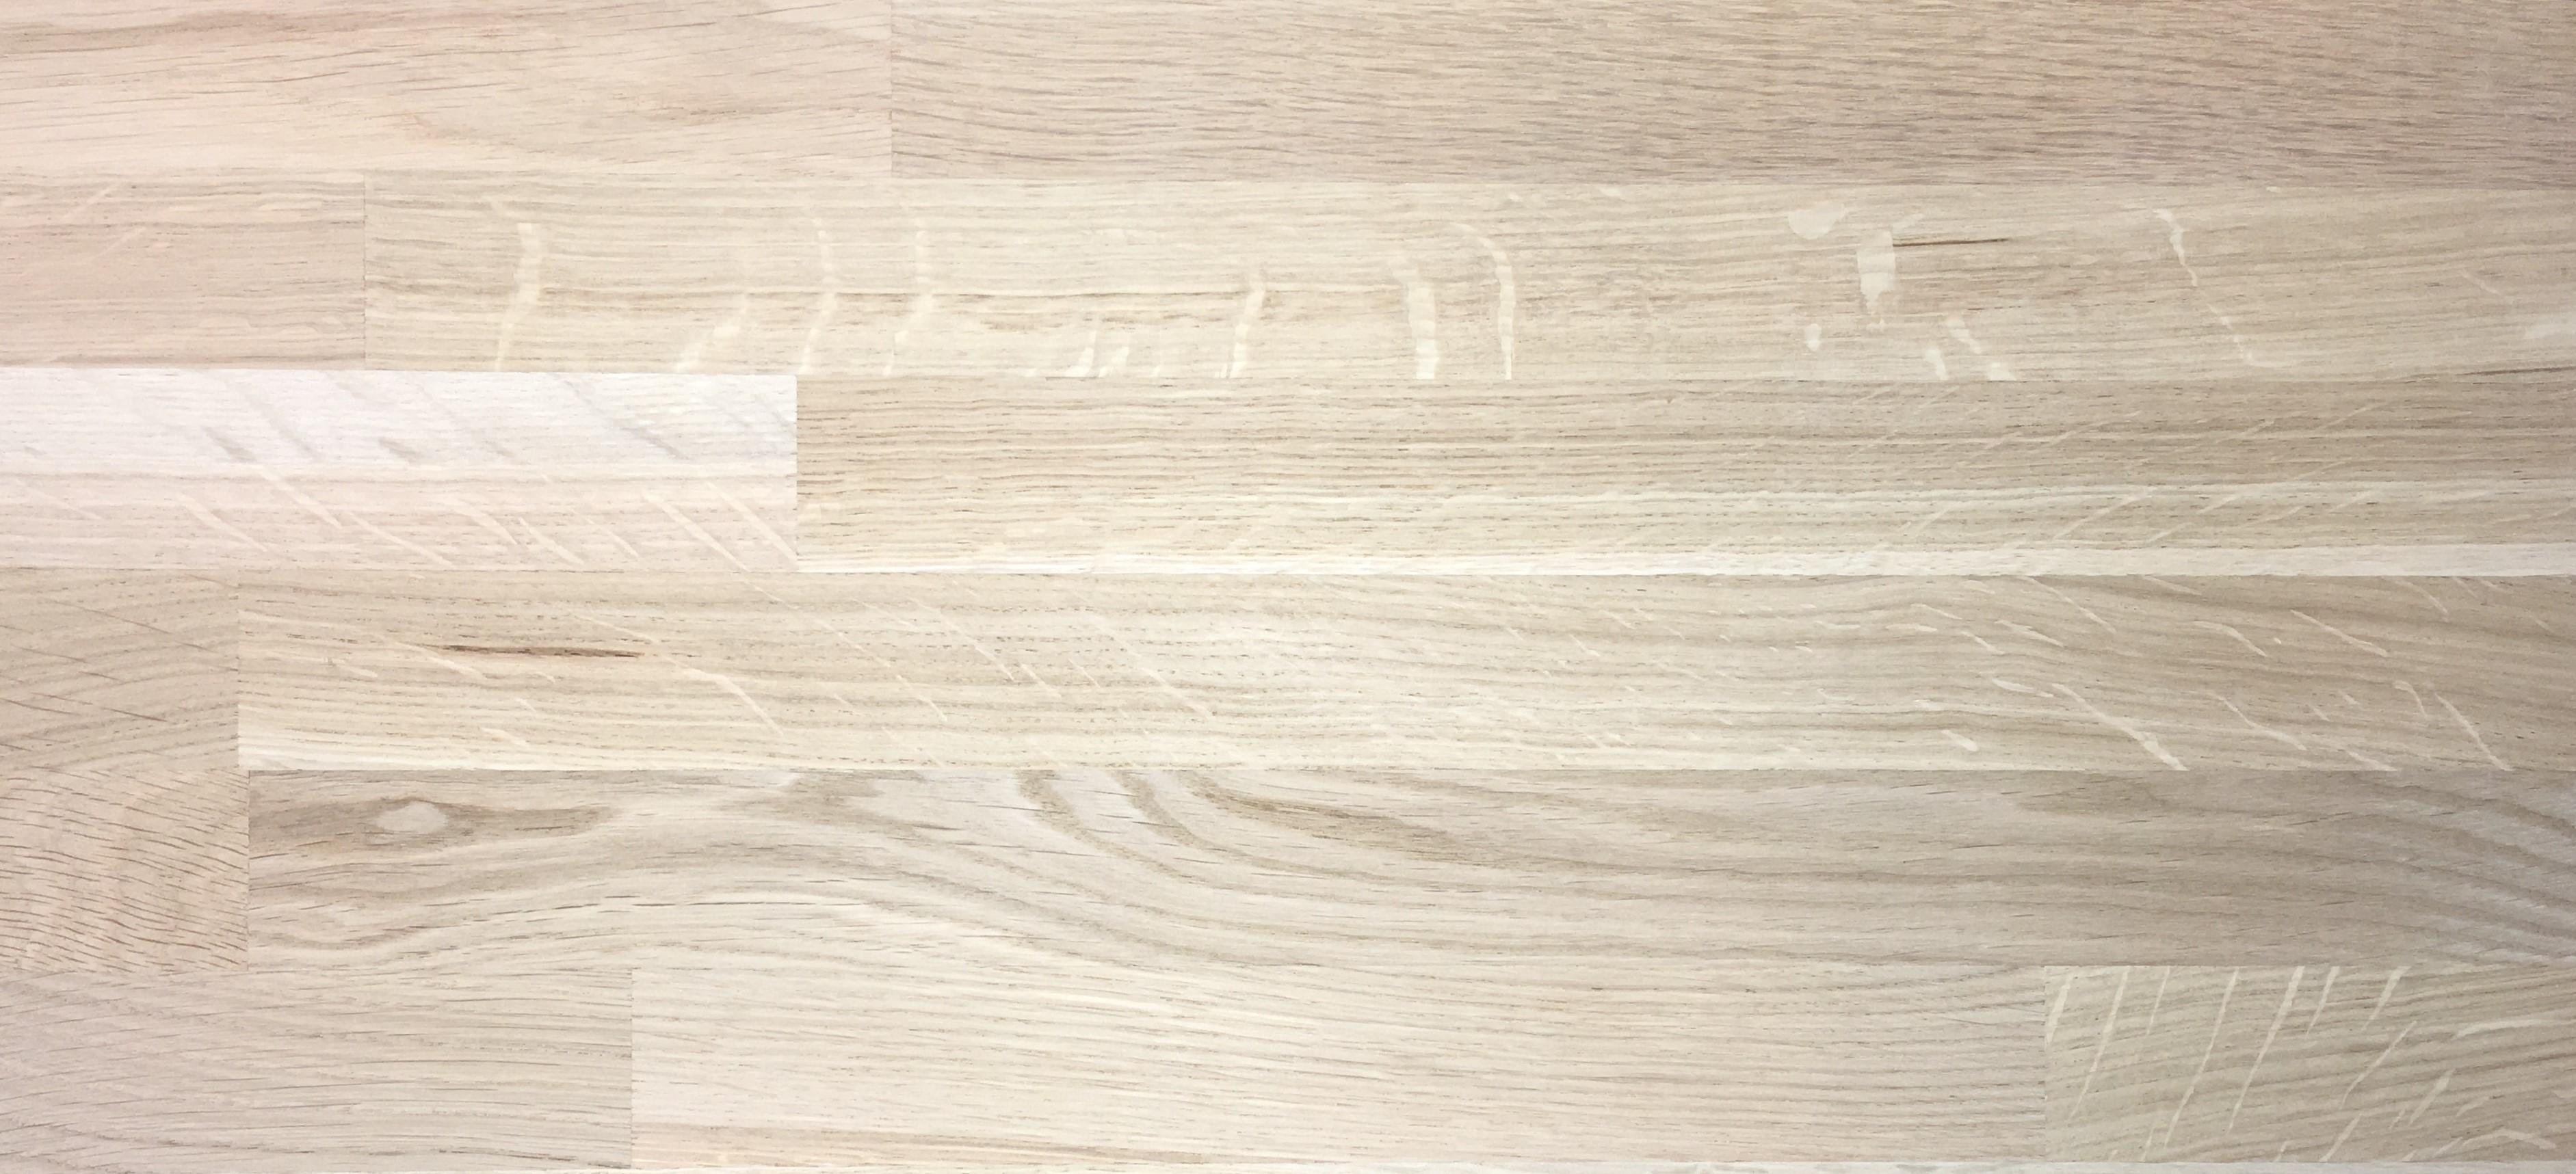 24 25mm Thick European Oak Panels